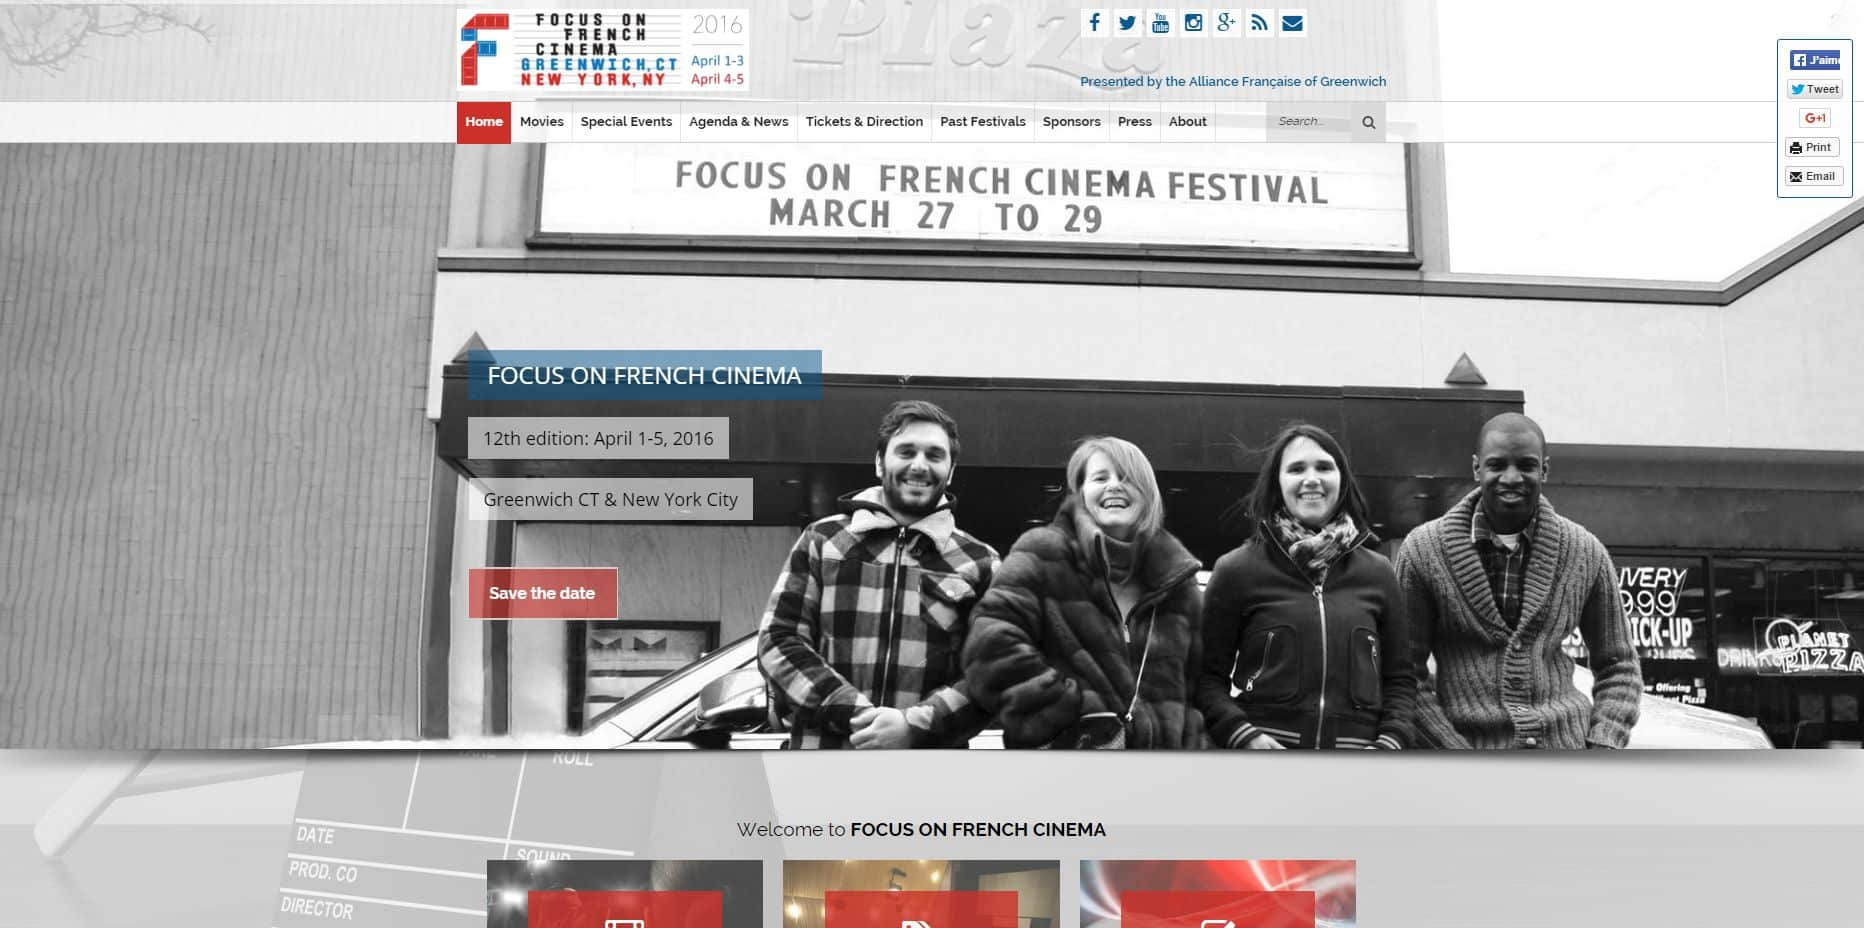 conception-web-montreal-focus-on-french-cinema-1-1